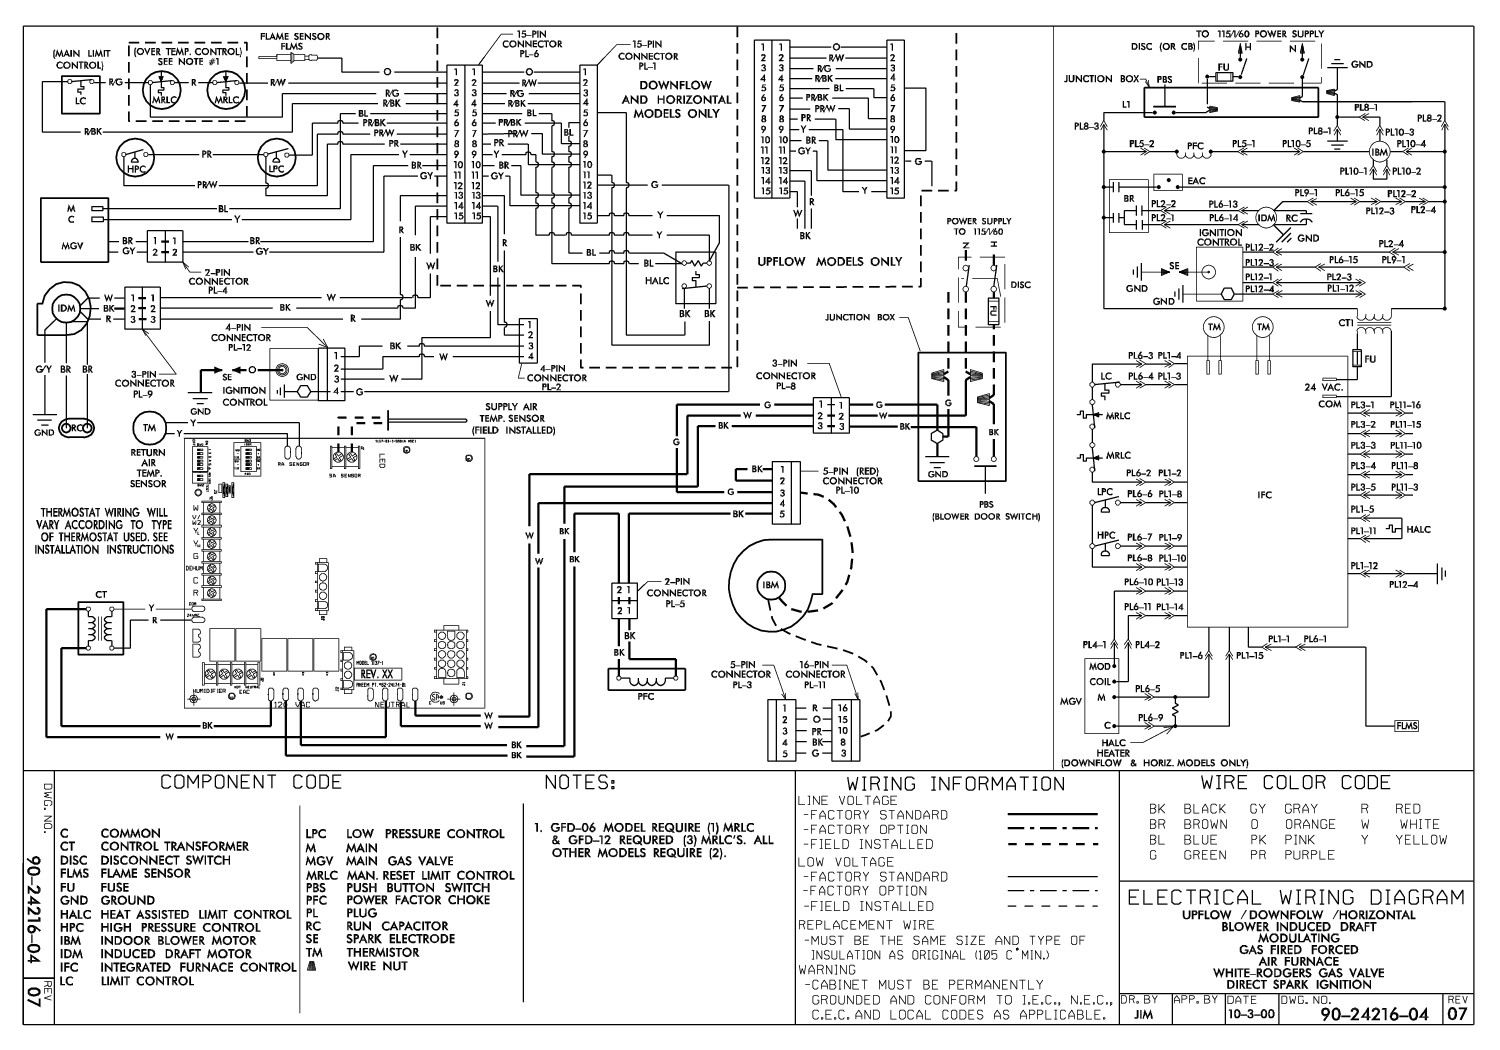 [SCHEMATICS_48YU]  DIAGRAM] Old Icp Furnace Wiring Diagram FULL Version HD Quality Wiring  Diagram - MG50DFXSCHEMATIC4215.CONTRABBASSIVERDIANI.IT | Icp Hvac Wiring |  | Contrabbassi di Simone e Damiano Verdiani